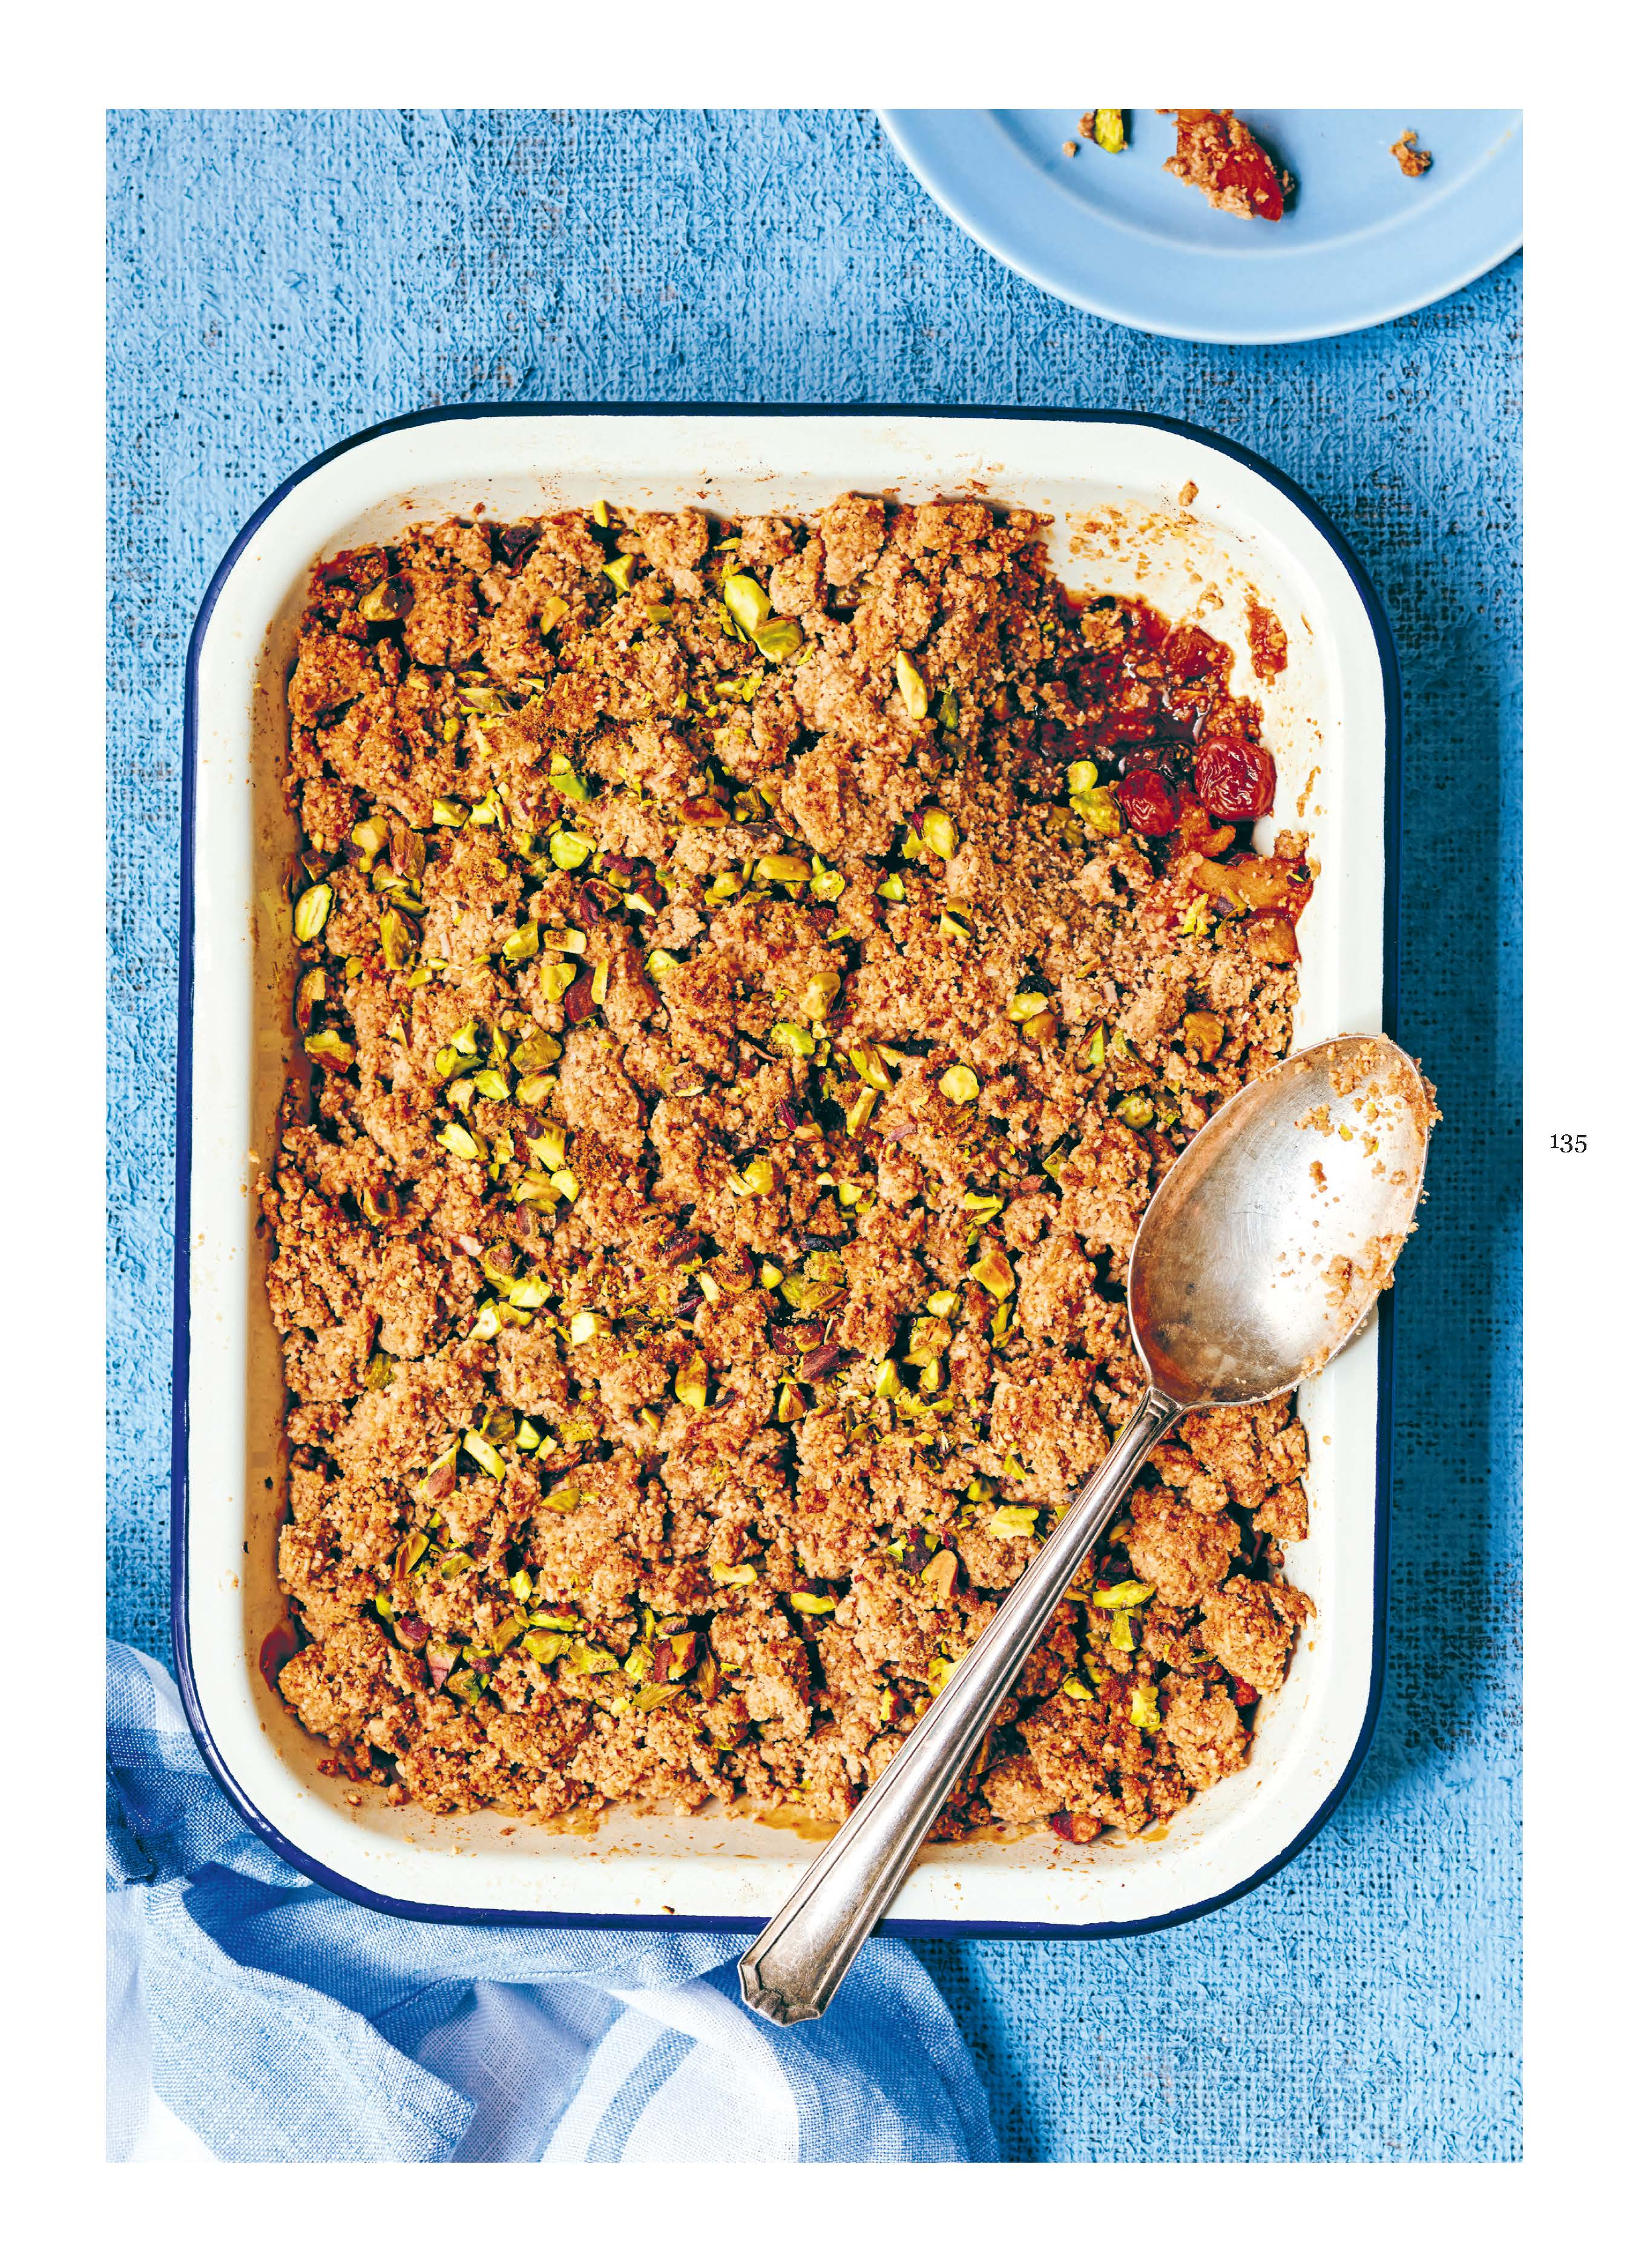 Apple & apricot crumble